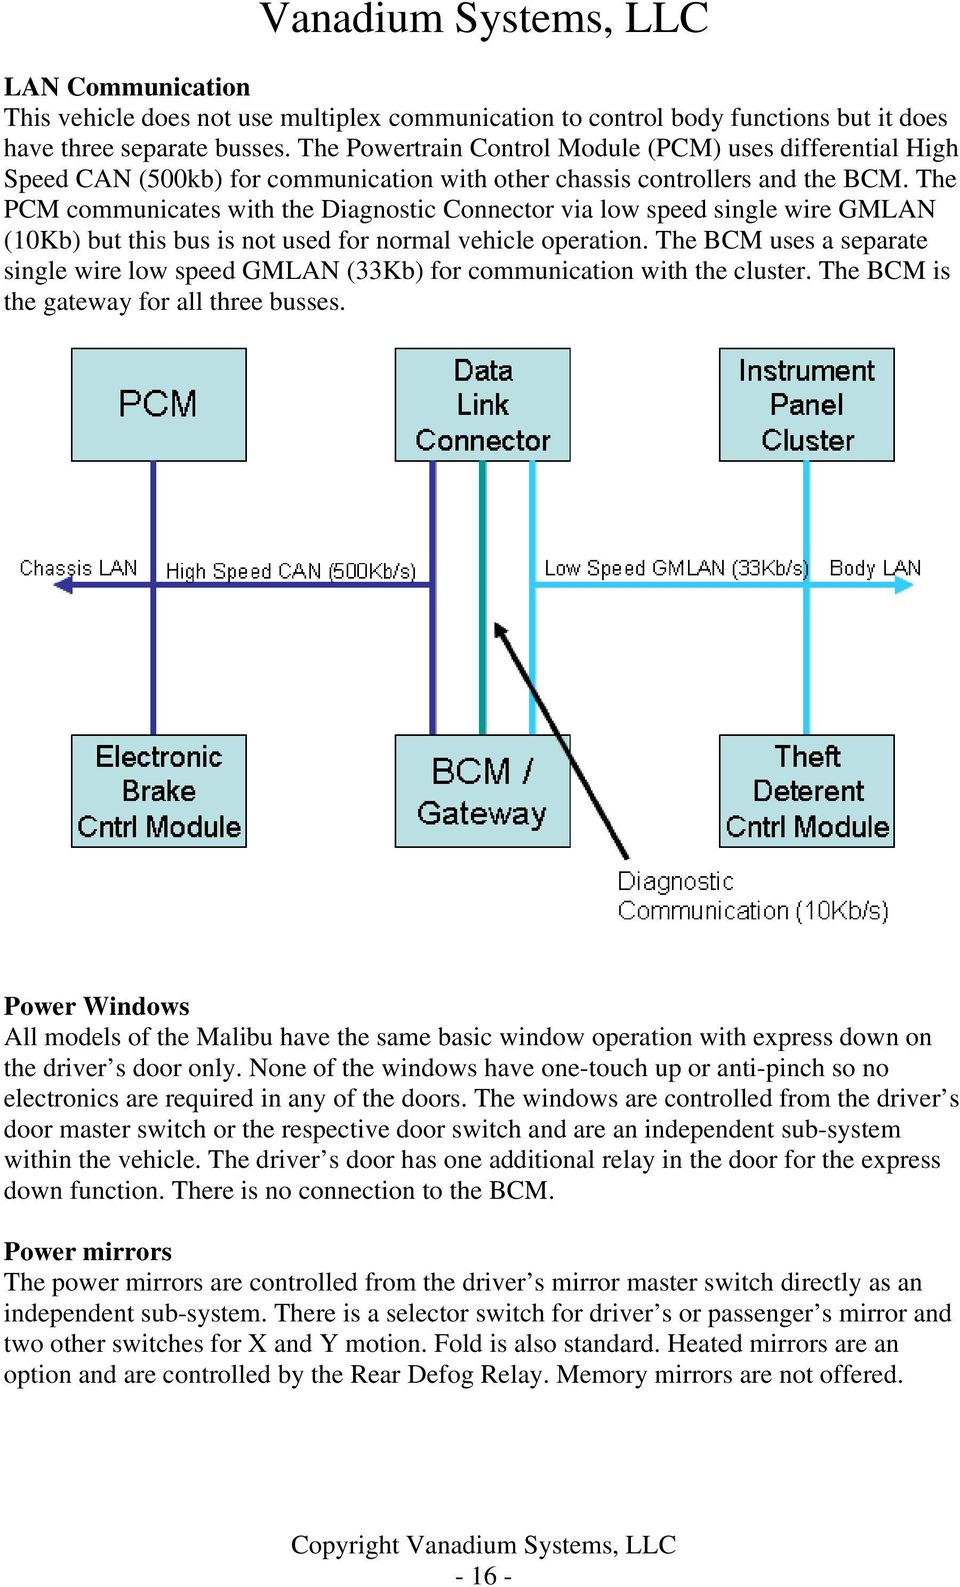 Automotive Architectures For Interior Electronics Pdf Electrical Wiring Diagrams 2003 Subara Outback Ll Bean The Pcm Communicates With Diagnostic Connector Via Low Speed Single Wire Gmlan 10kb